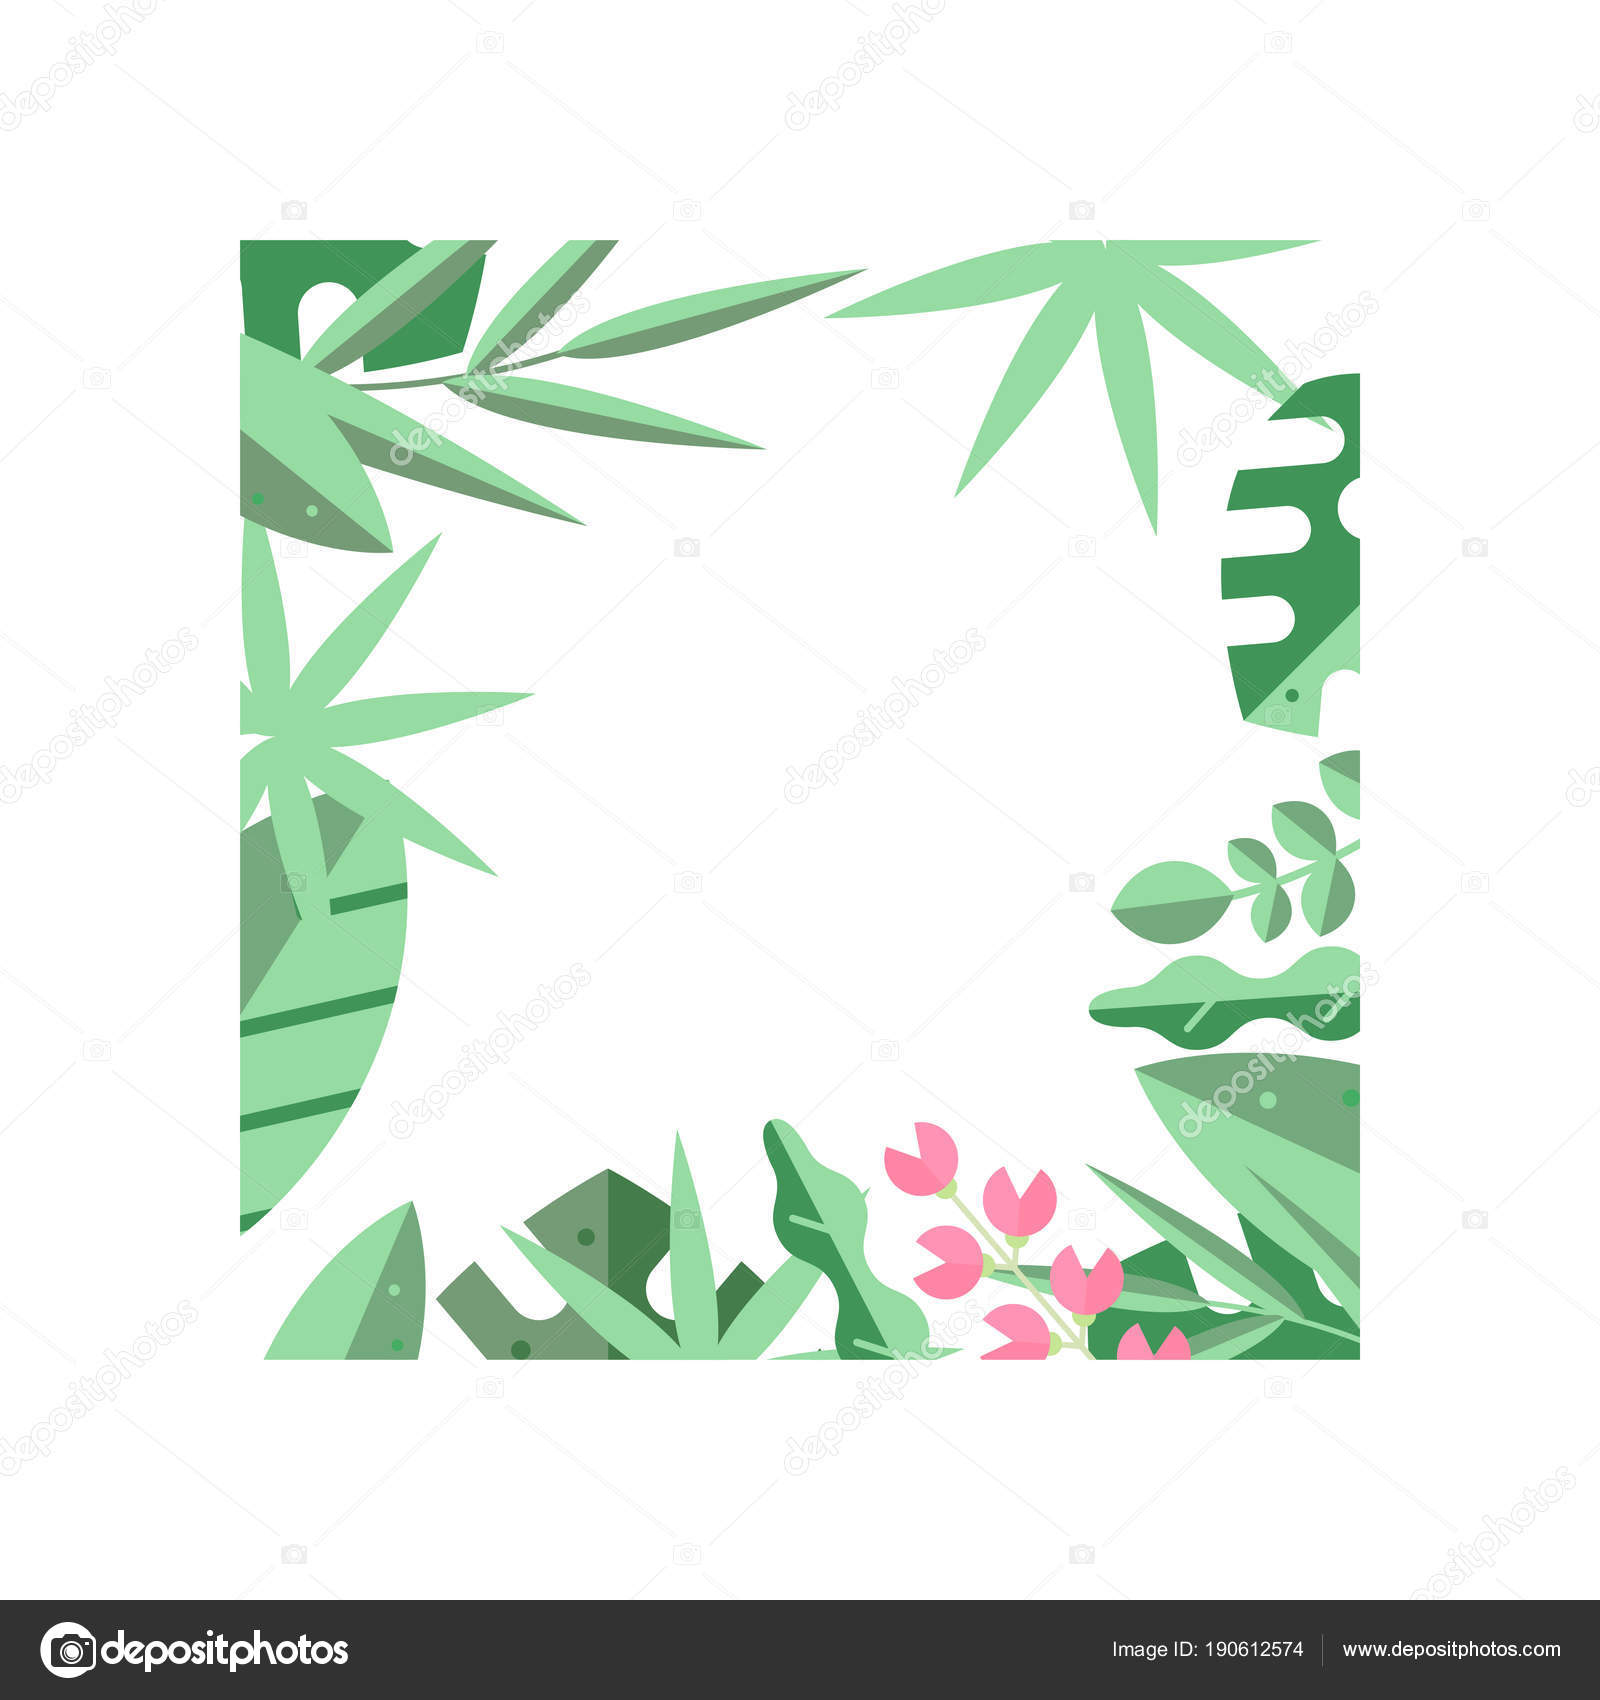 Creative Square Frame Of Green Tropical Leaves And Little Pink Flowers Natural Border Flat Vector Design For Poster Flyer Or Invitation Stock Vector C Topvectors 190612574 Tropical leaves clipart tropical leaves vector tropical leaf leaves nature green palm tree plant jungle branch exotic banana creative exotic botanical tropical leaves with text vector. https depositphotos com 190612574 stock illustration creative square frame of green html